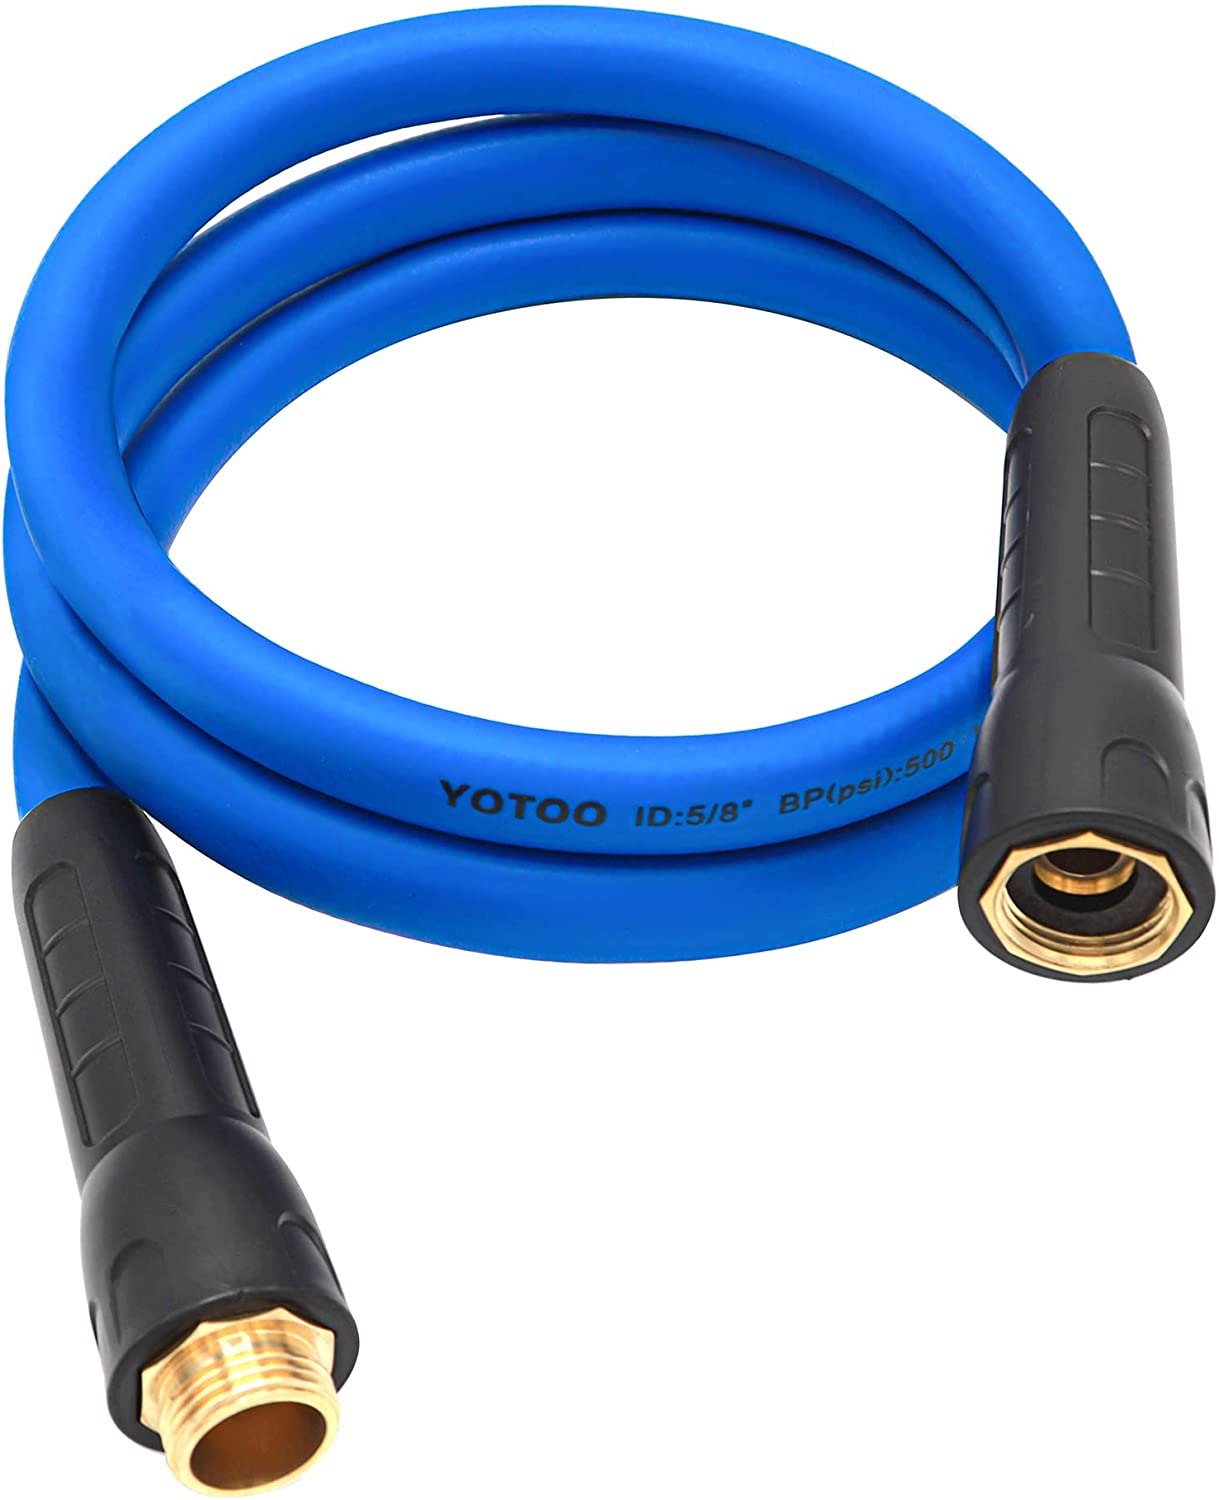 YOTOO Heavy Duty Hybrid Garden Lead in Water Hose 5/8-Inch by 6-Feet 150 PSI, Kink Resistant, All-Weather Flexible with Swivel Grip Handle and 3/4